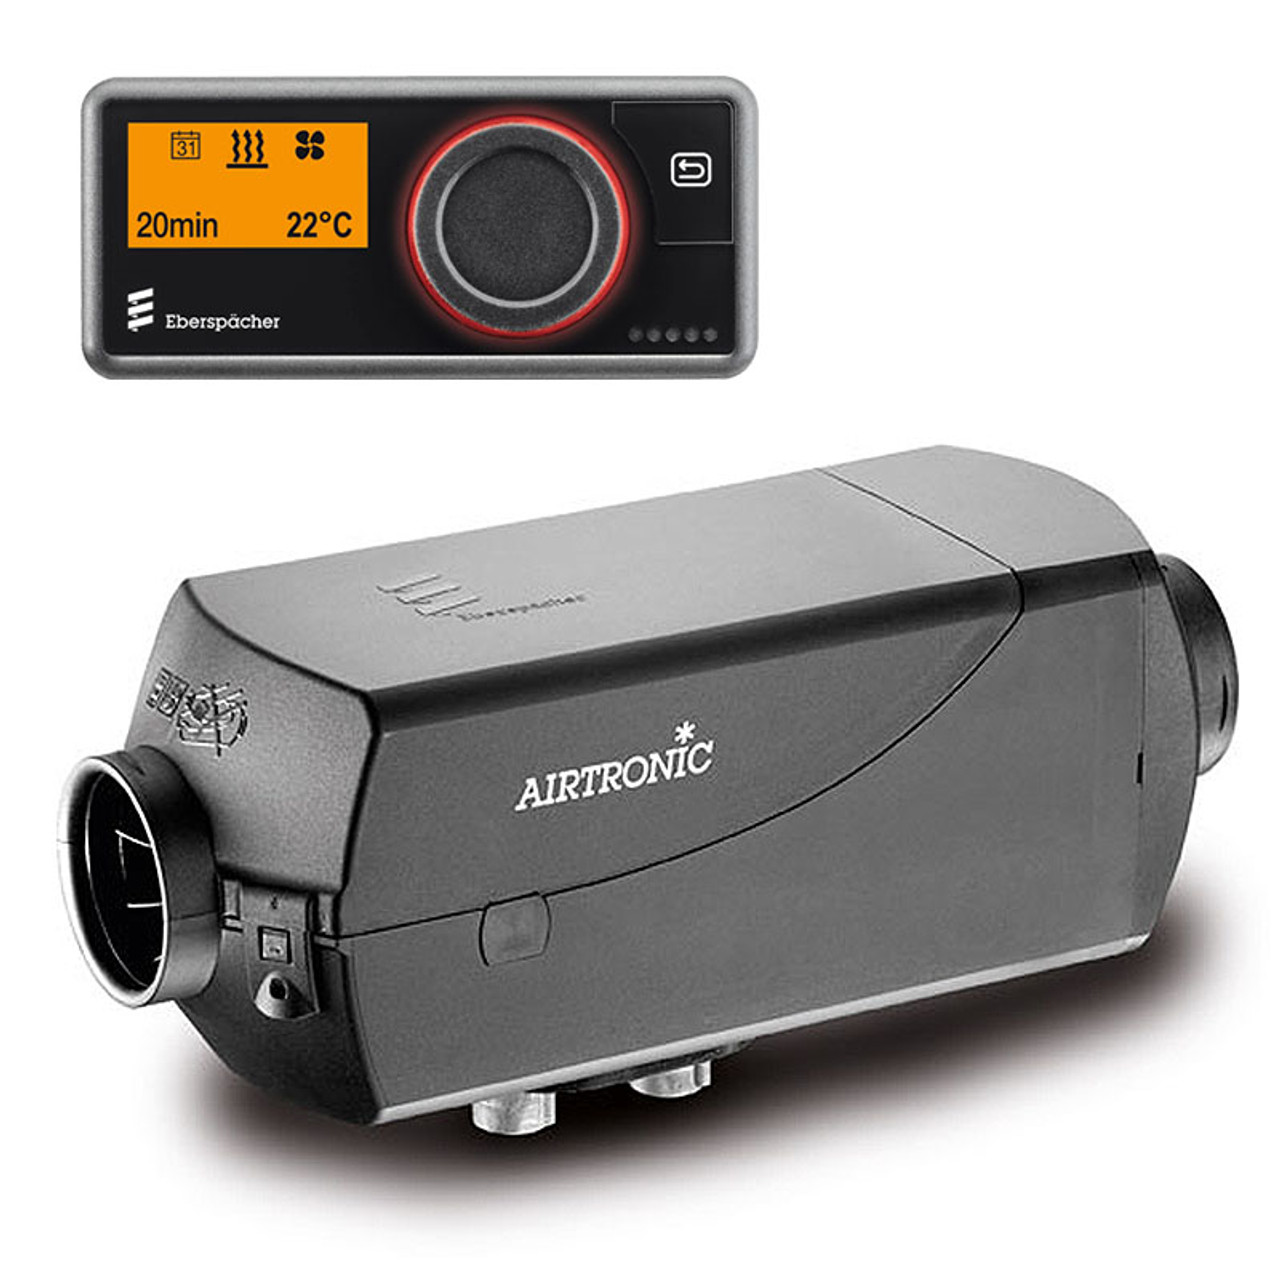 This Airtronic D2L kit from Eberspacher is suitable for internal mounting within your Volkswagen T5 T6 campervan and comes complete with the new EasyStart Pro control panel